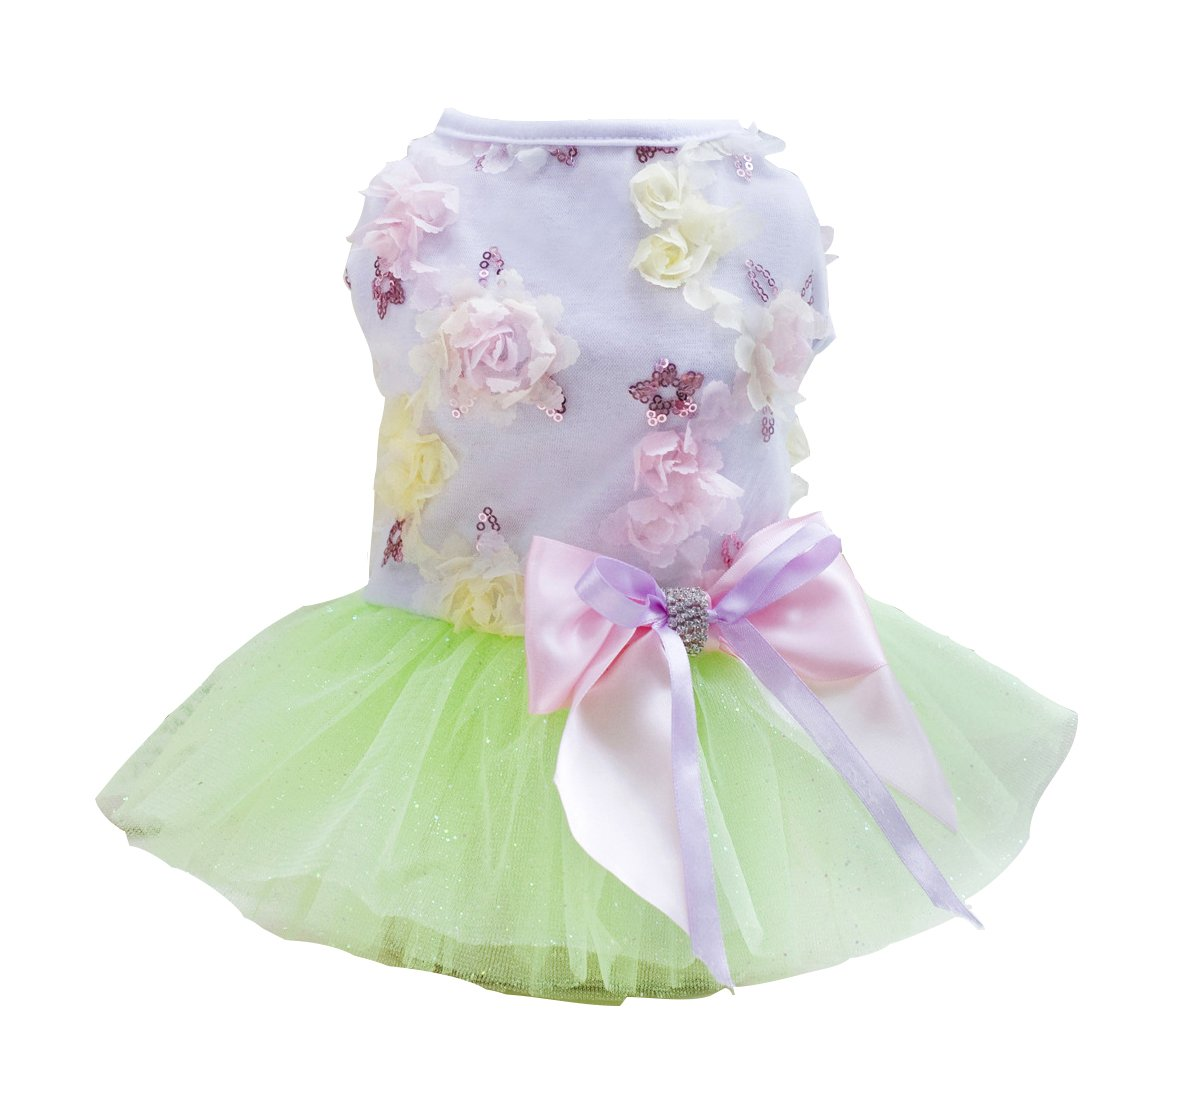 GREEN L GREEN L Rdc Pet Dog Dress Puppy Dog Princess Dresses,Tutu Flower and Sequin Dot Wedding Lace Dress Luxury Bow Dress for Small Dog Girl (L, Green)